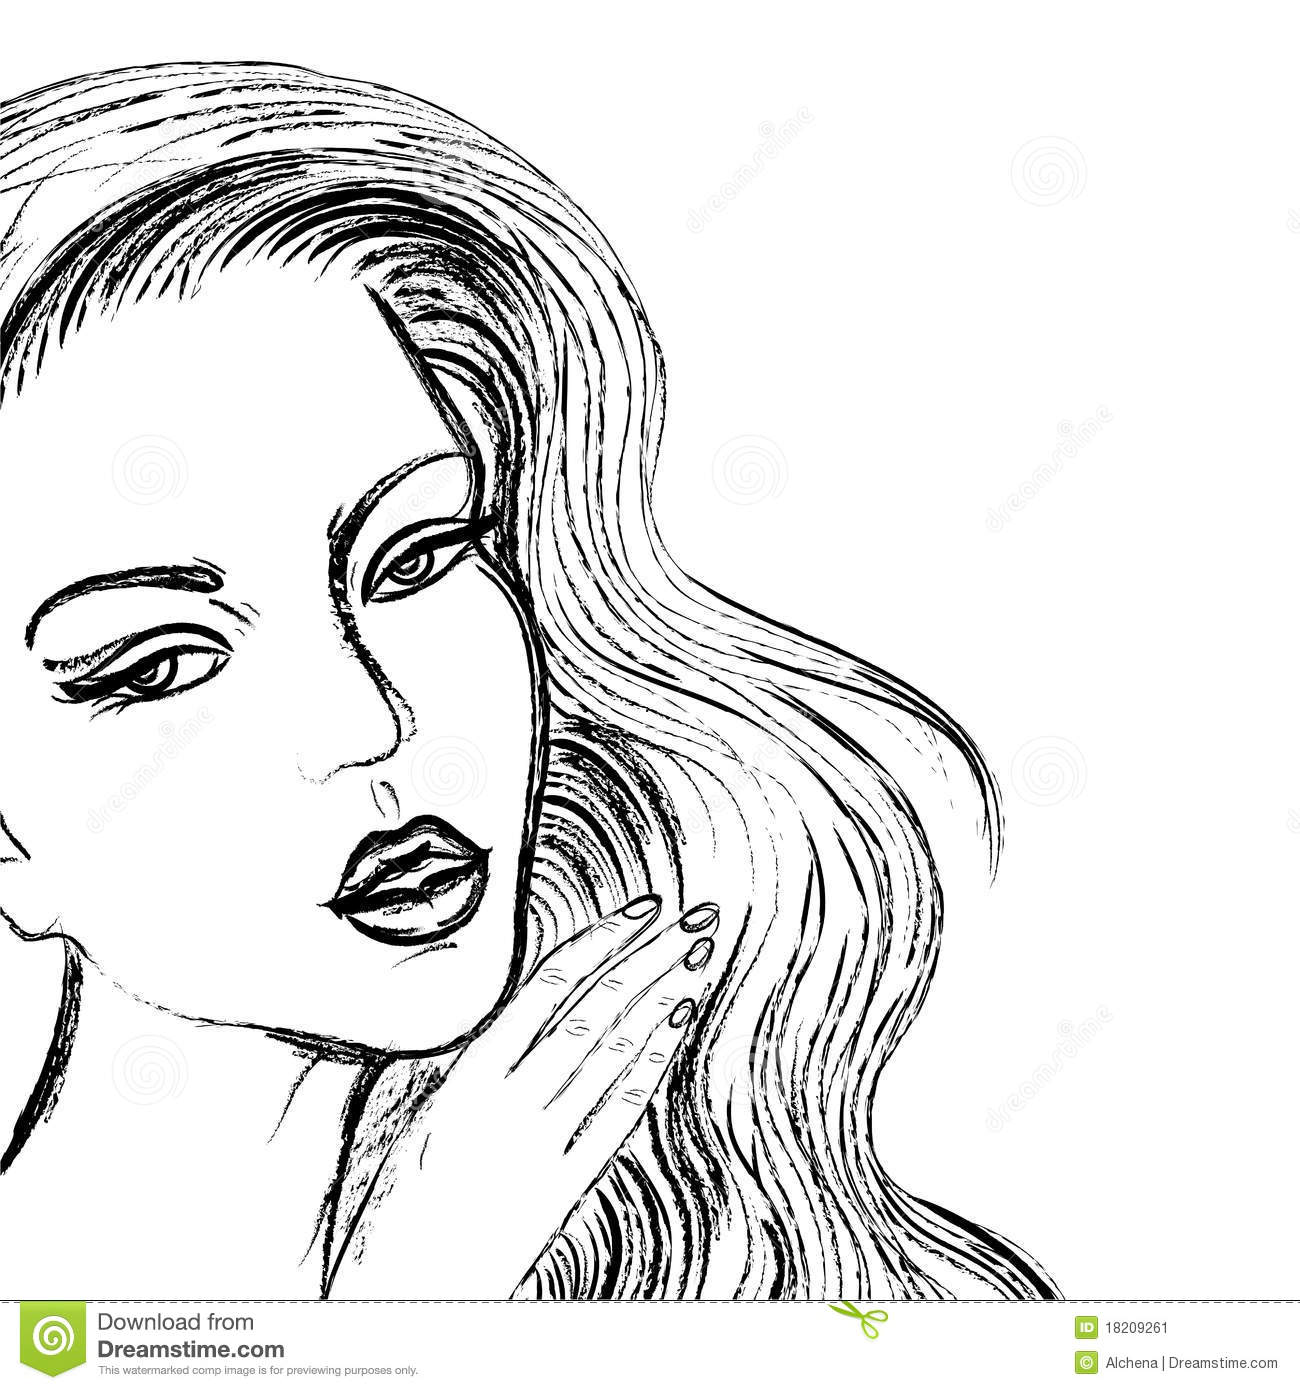 Sketch Of Beautiful Women Face Like Drawn By Coal Stock Image - Image 18209261